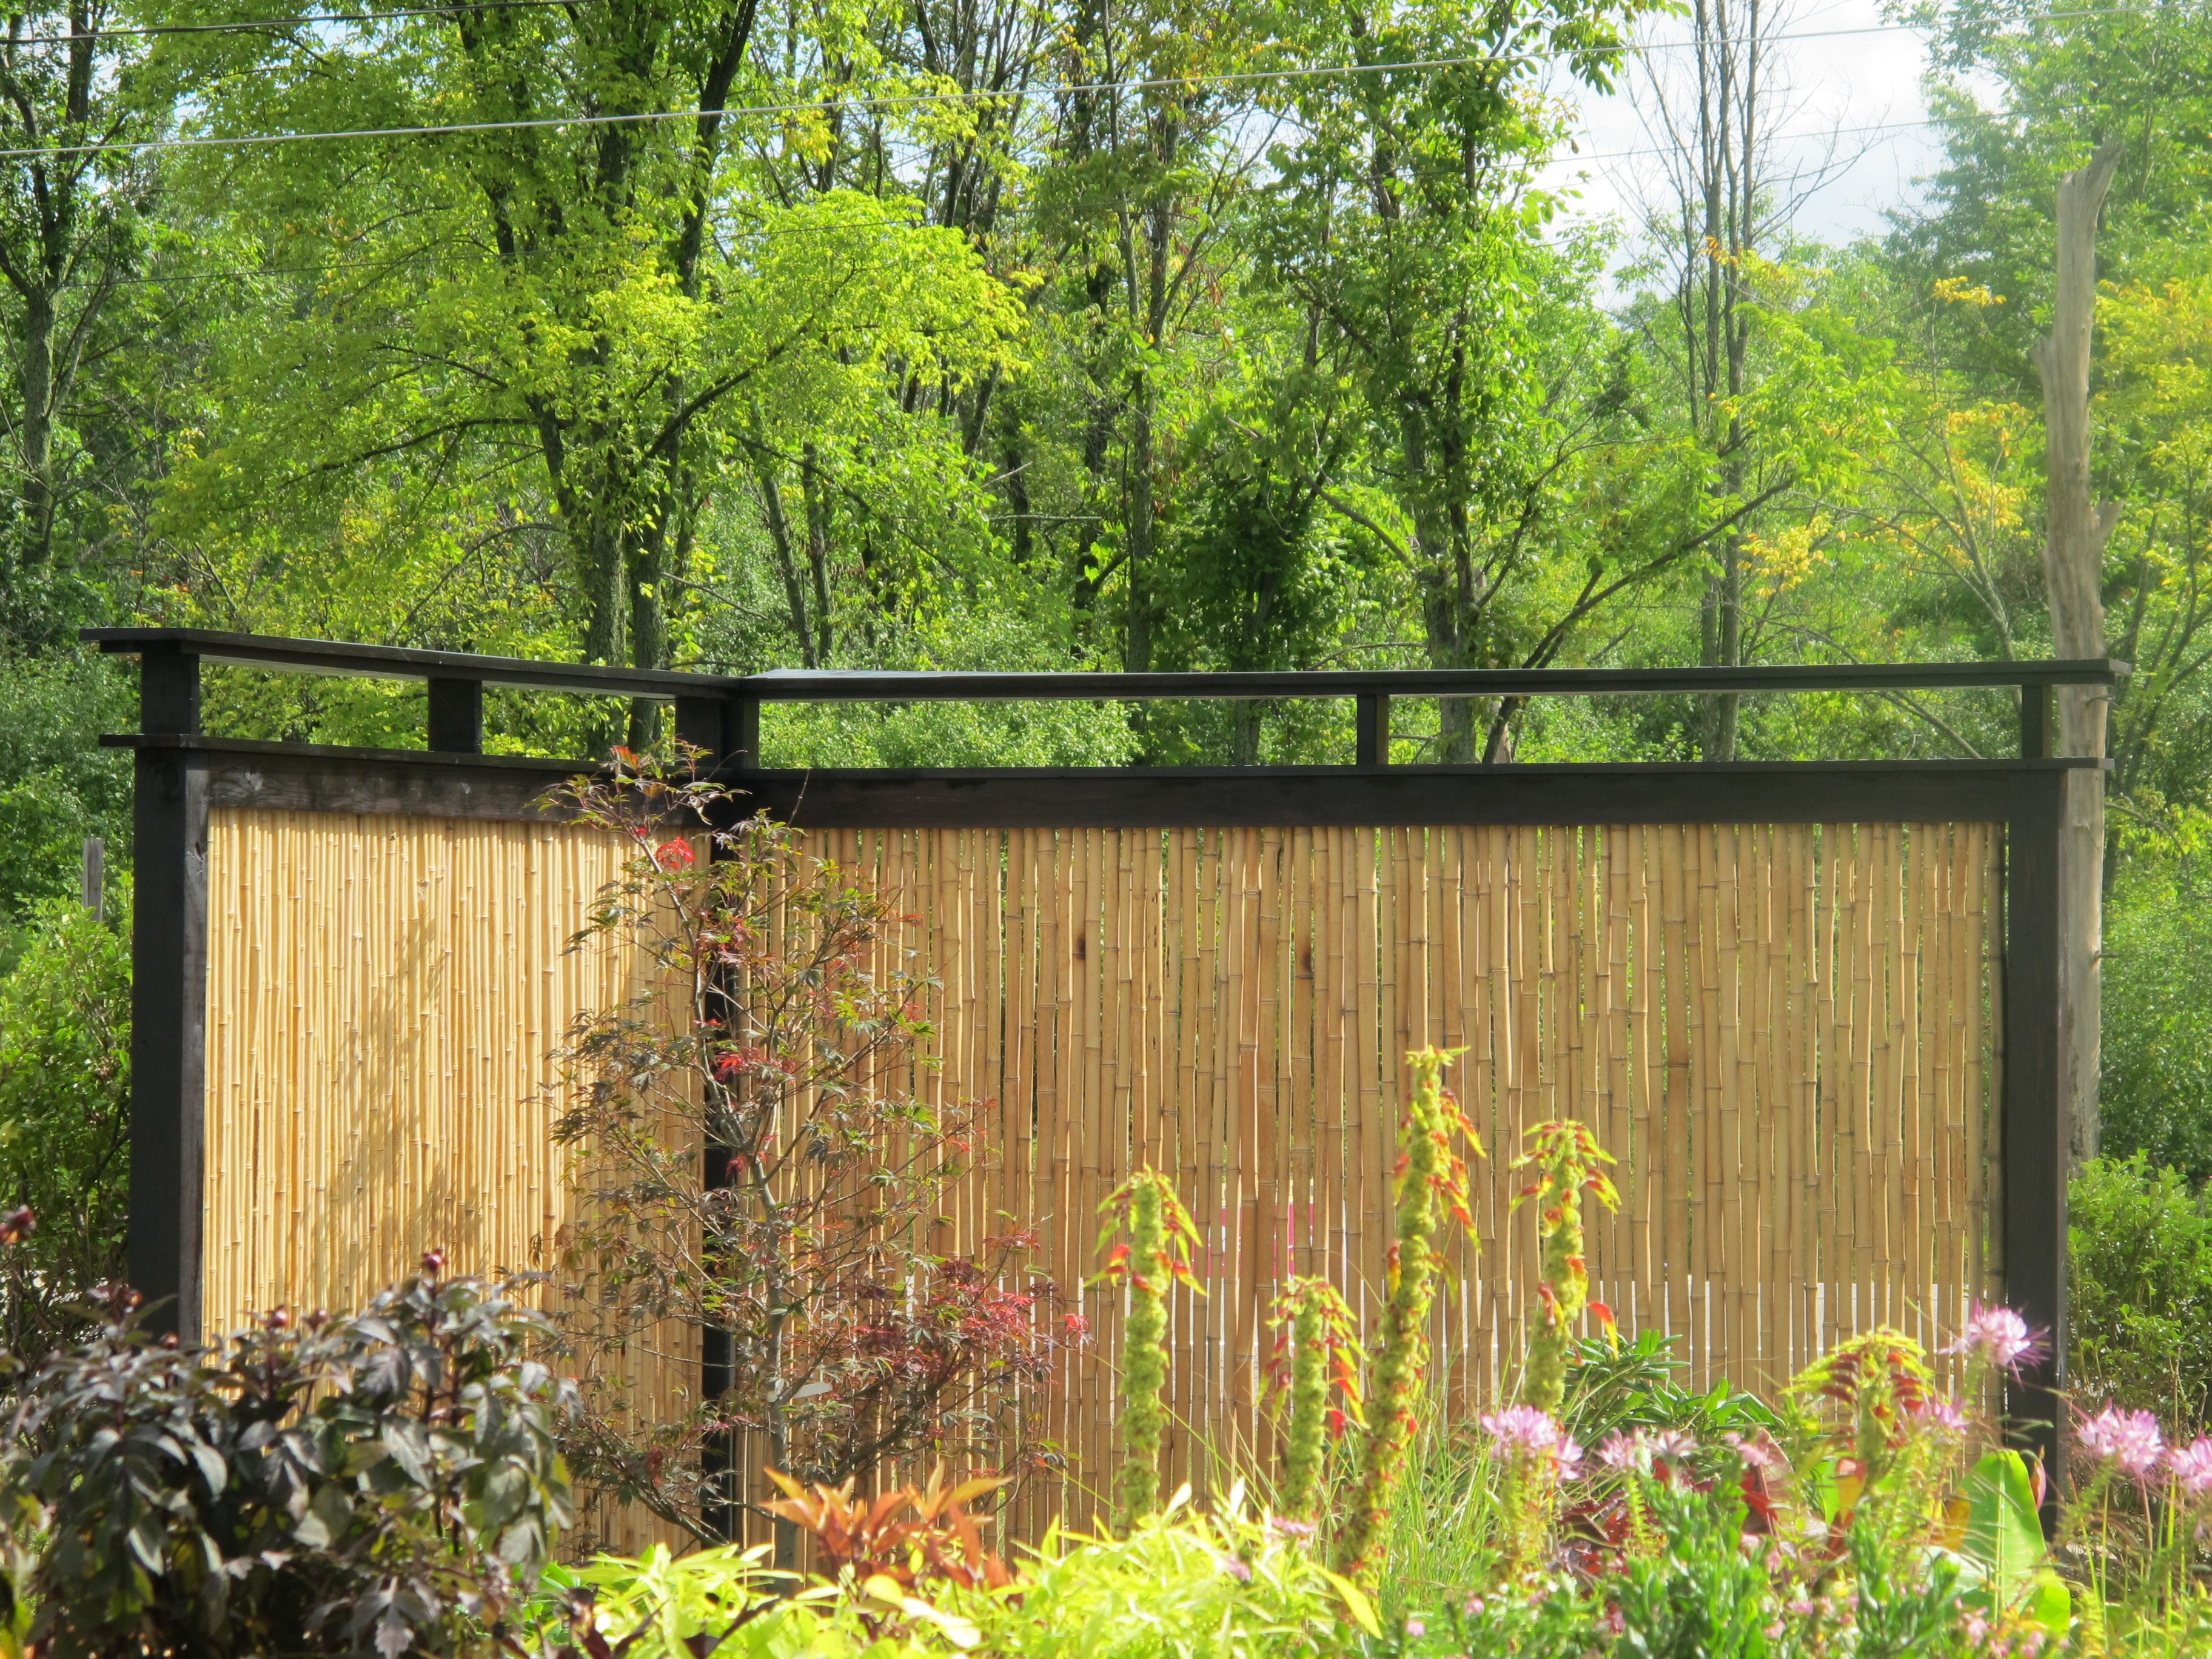 Outdoor, Stylish Creative Bamboo Privacy Fence Ideas For Backyard Garden  Decoration ~ Aesthetic Bamboo Fencing Ideas For Yard Parting And Decor